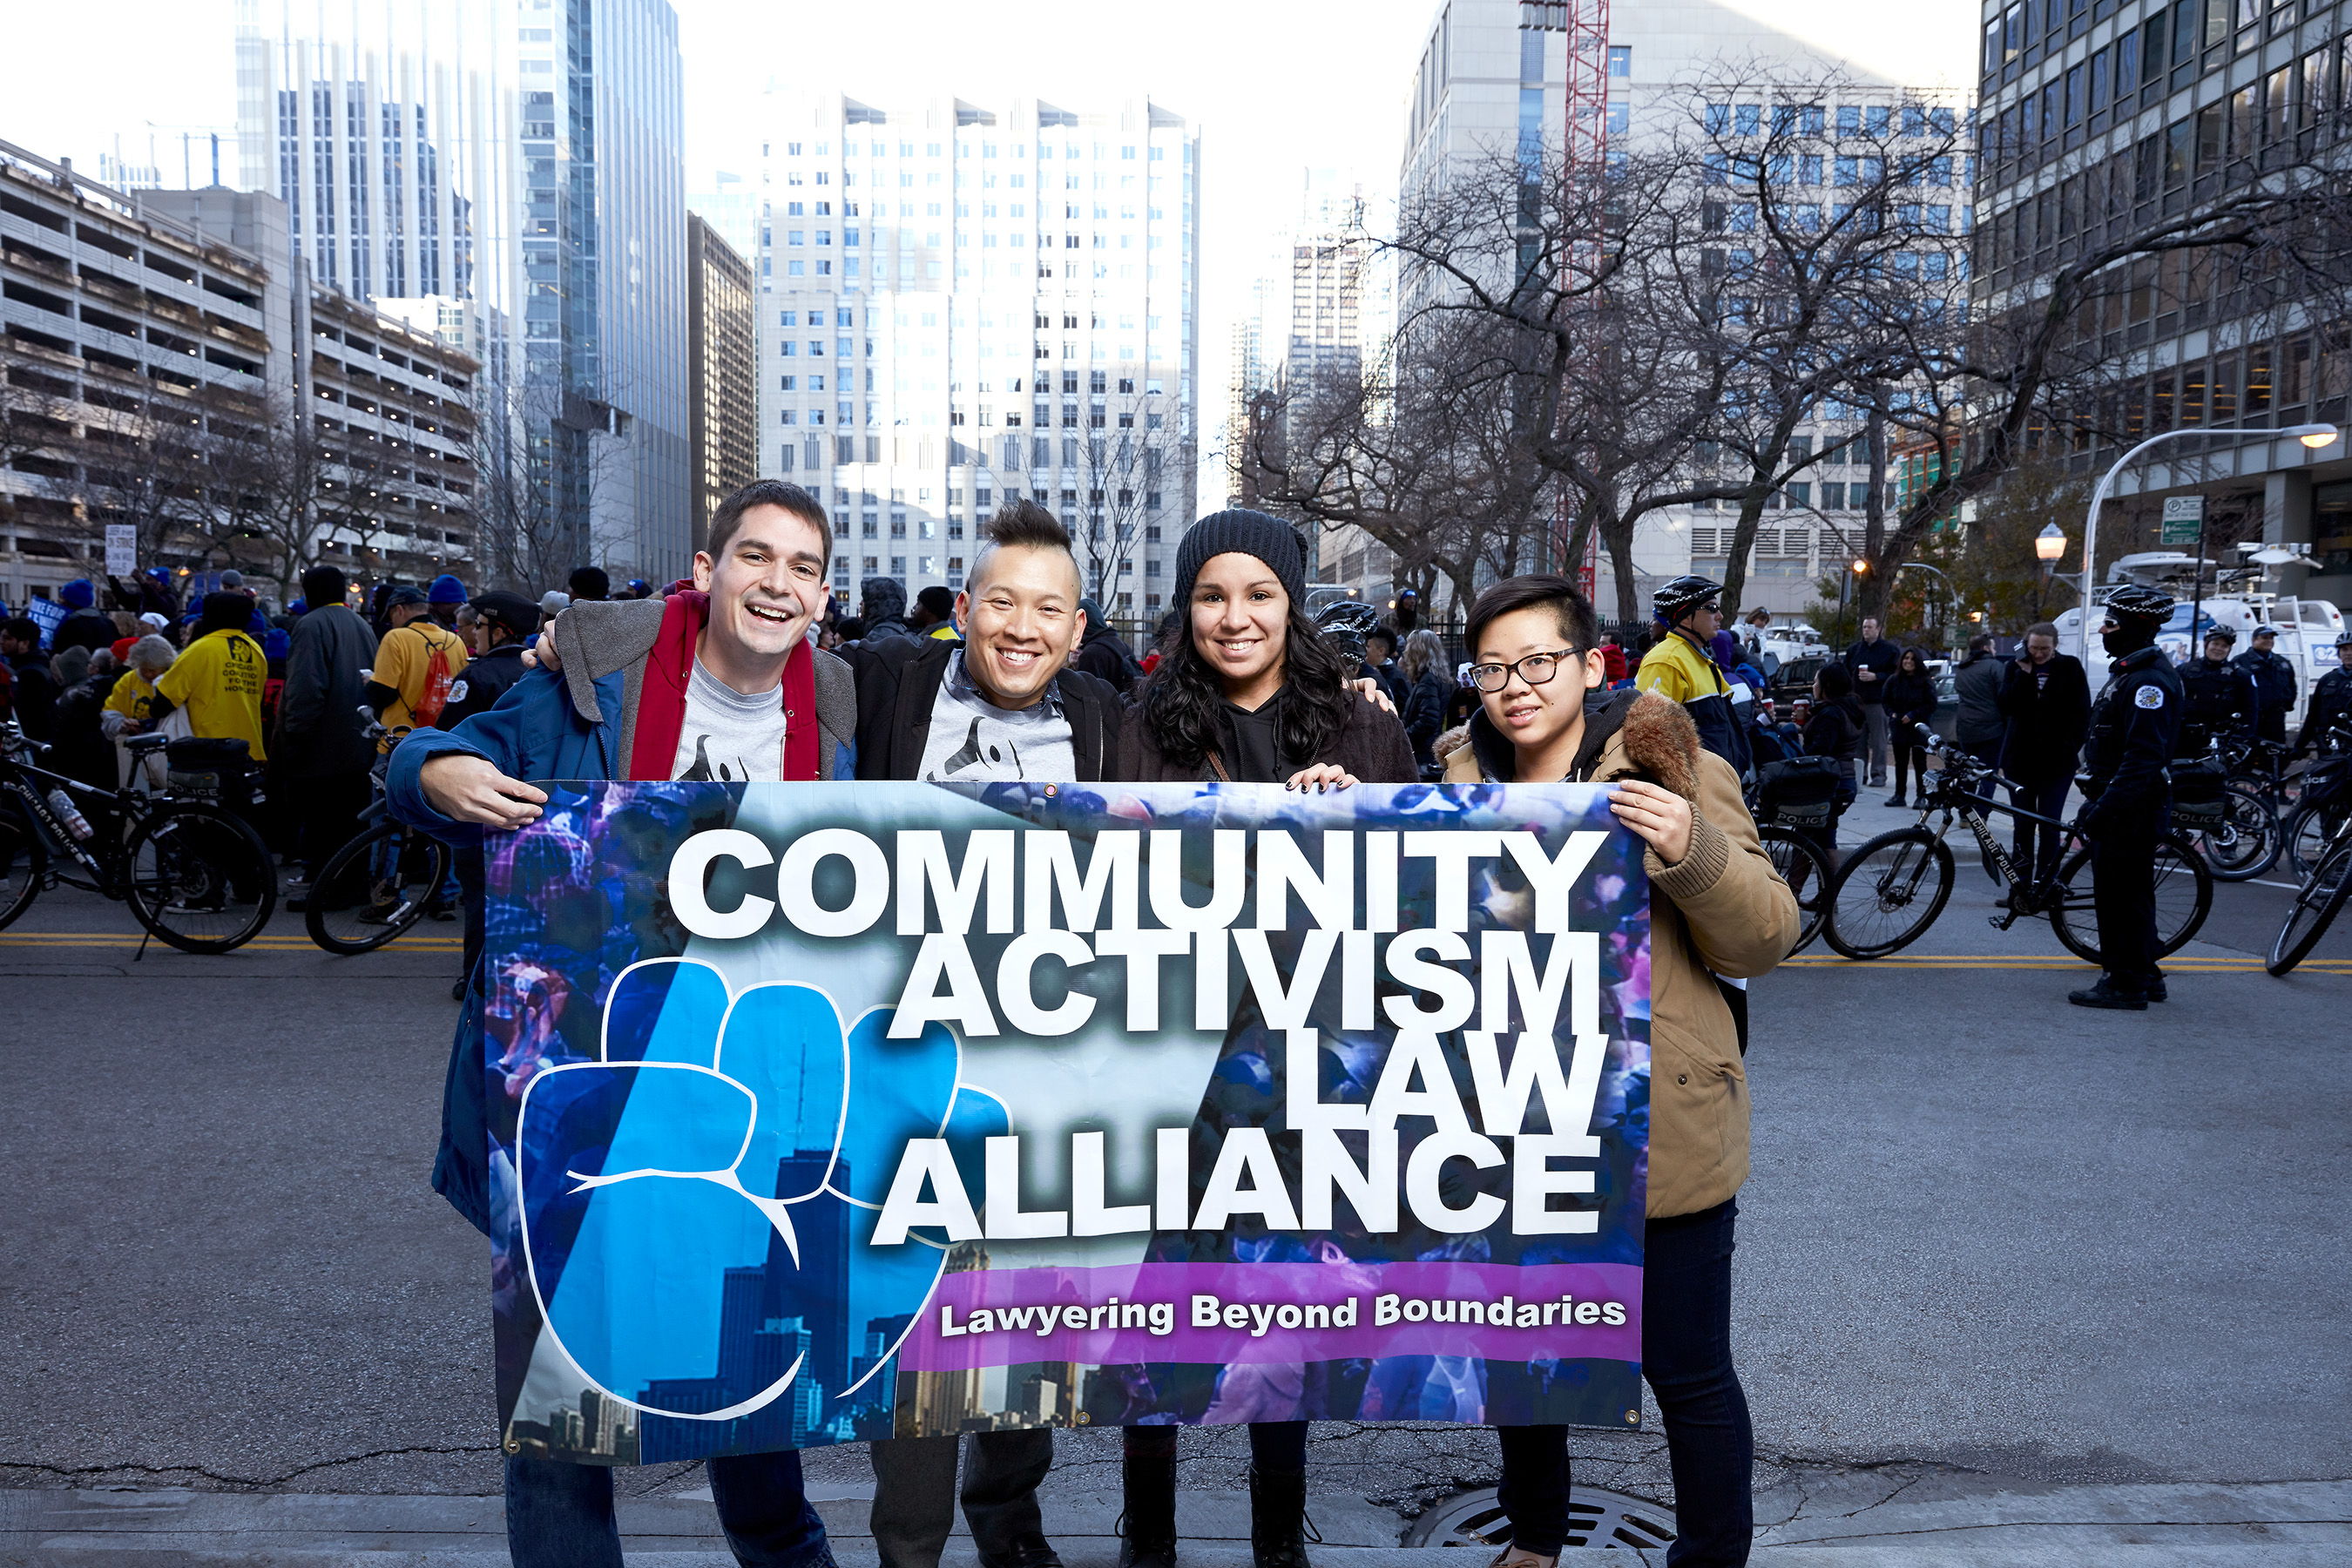 KIND People Winner and founder of Community Activism Law Alliance, Lam Ho, with his team on the streets of Chicago